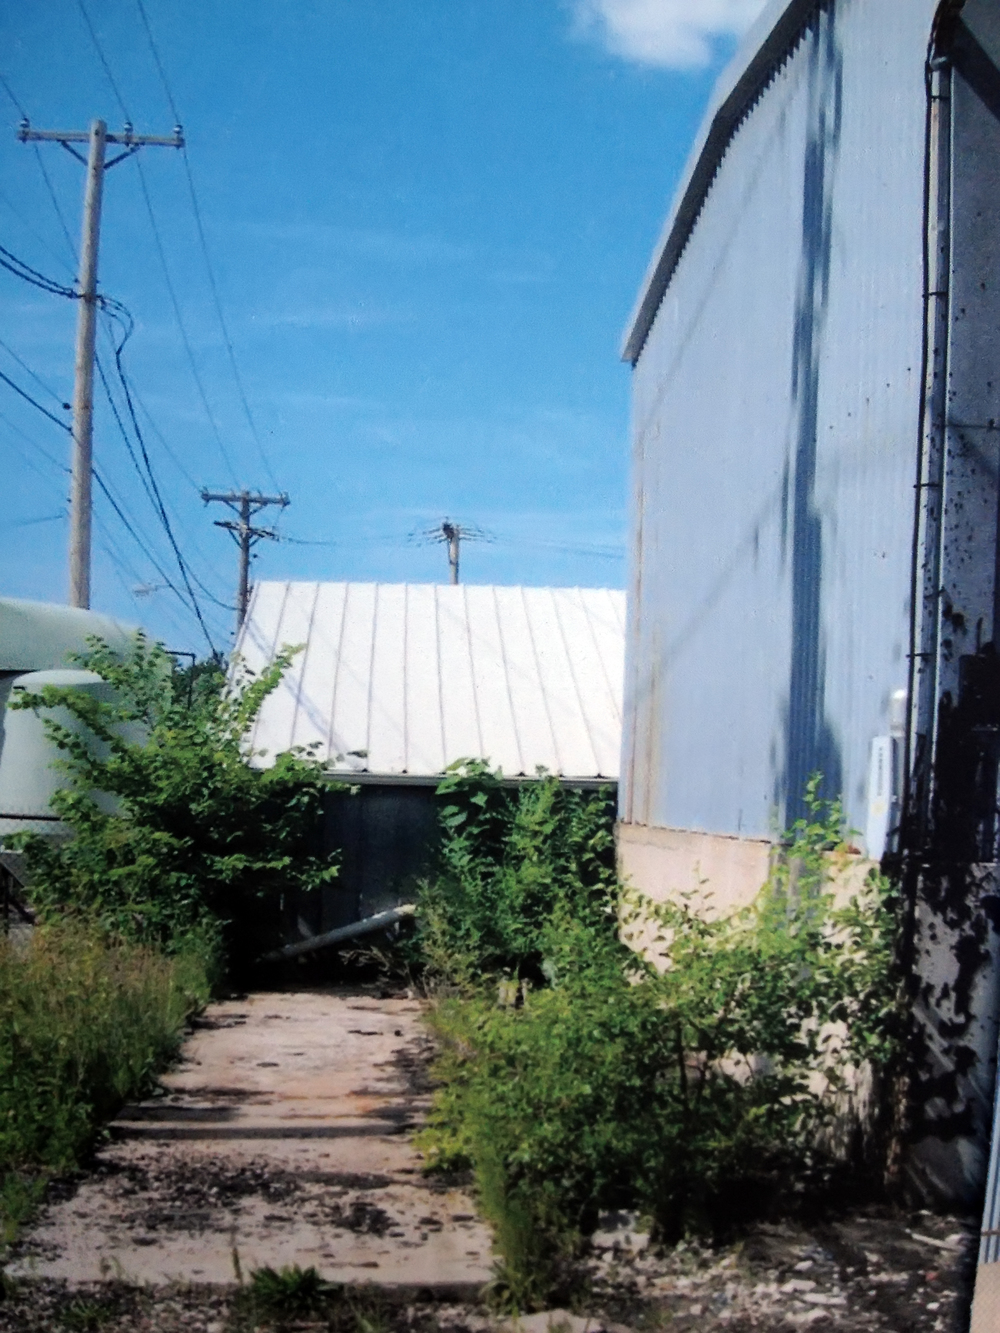 The warehouses in 2005 before they became Orr Street Studios.